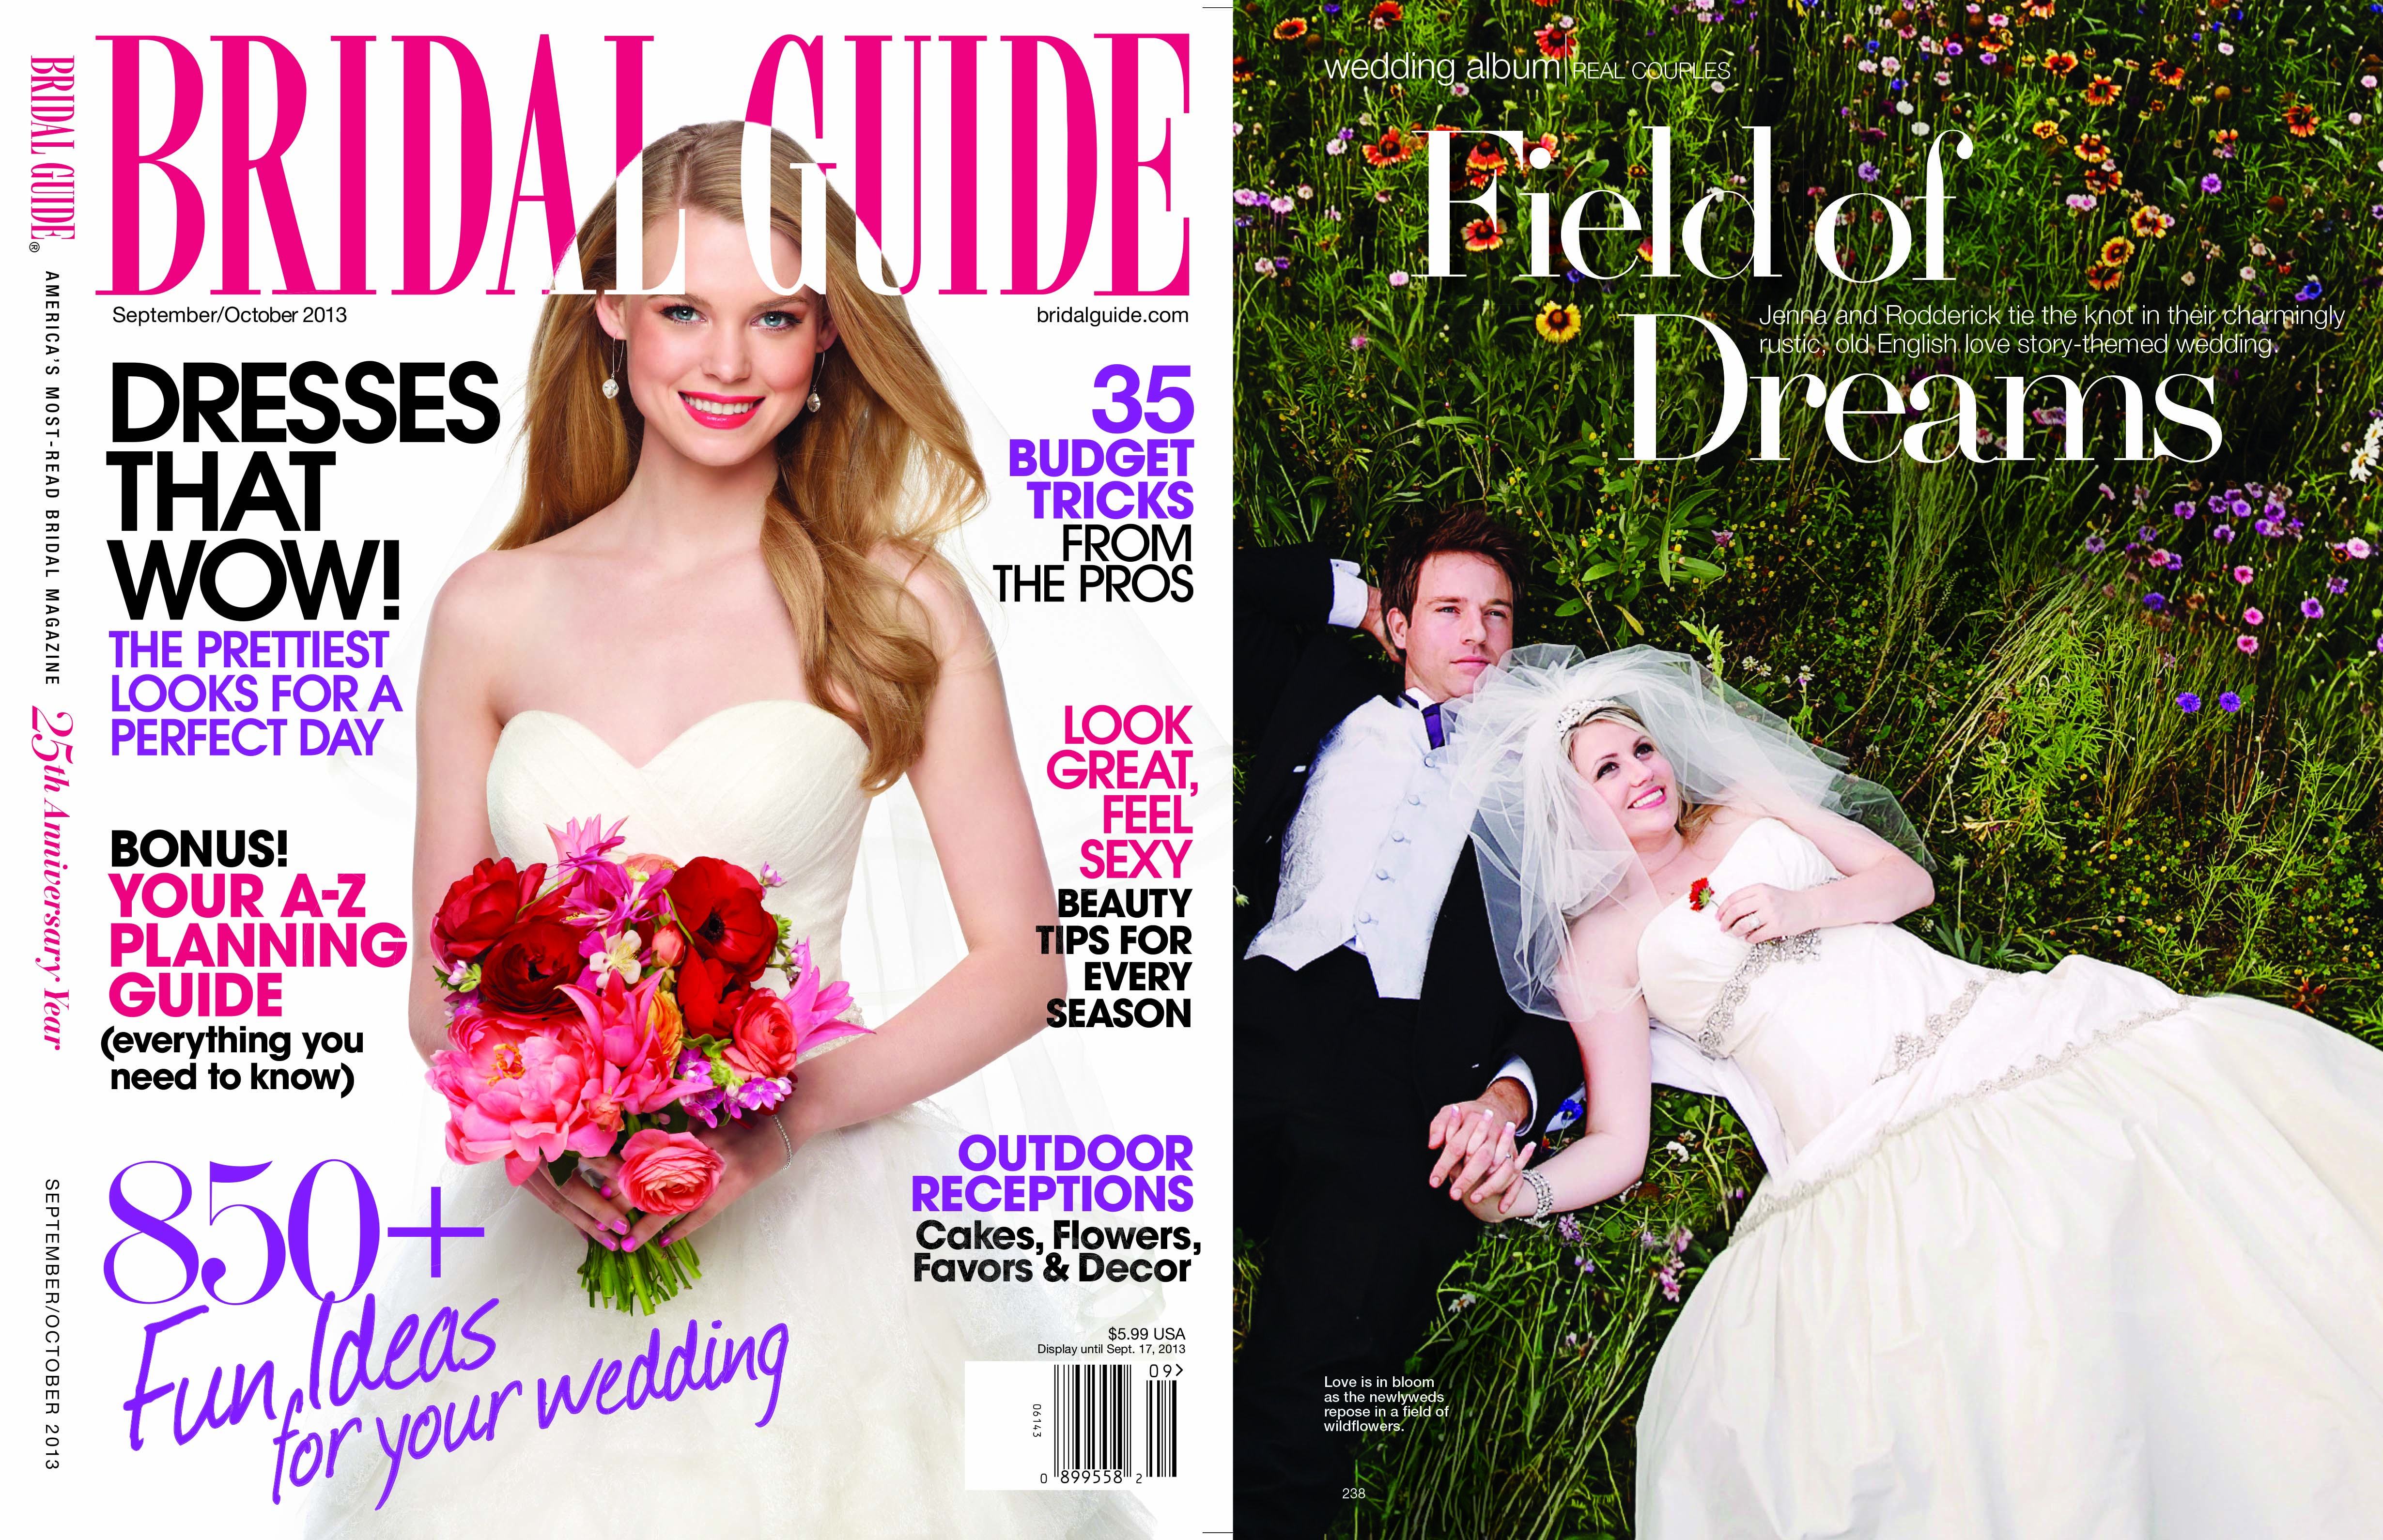 Bridalguide features photography by Nadia D